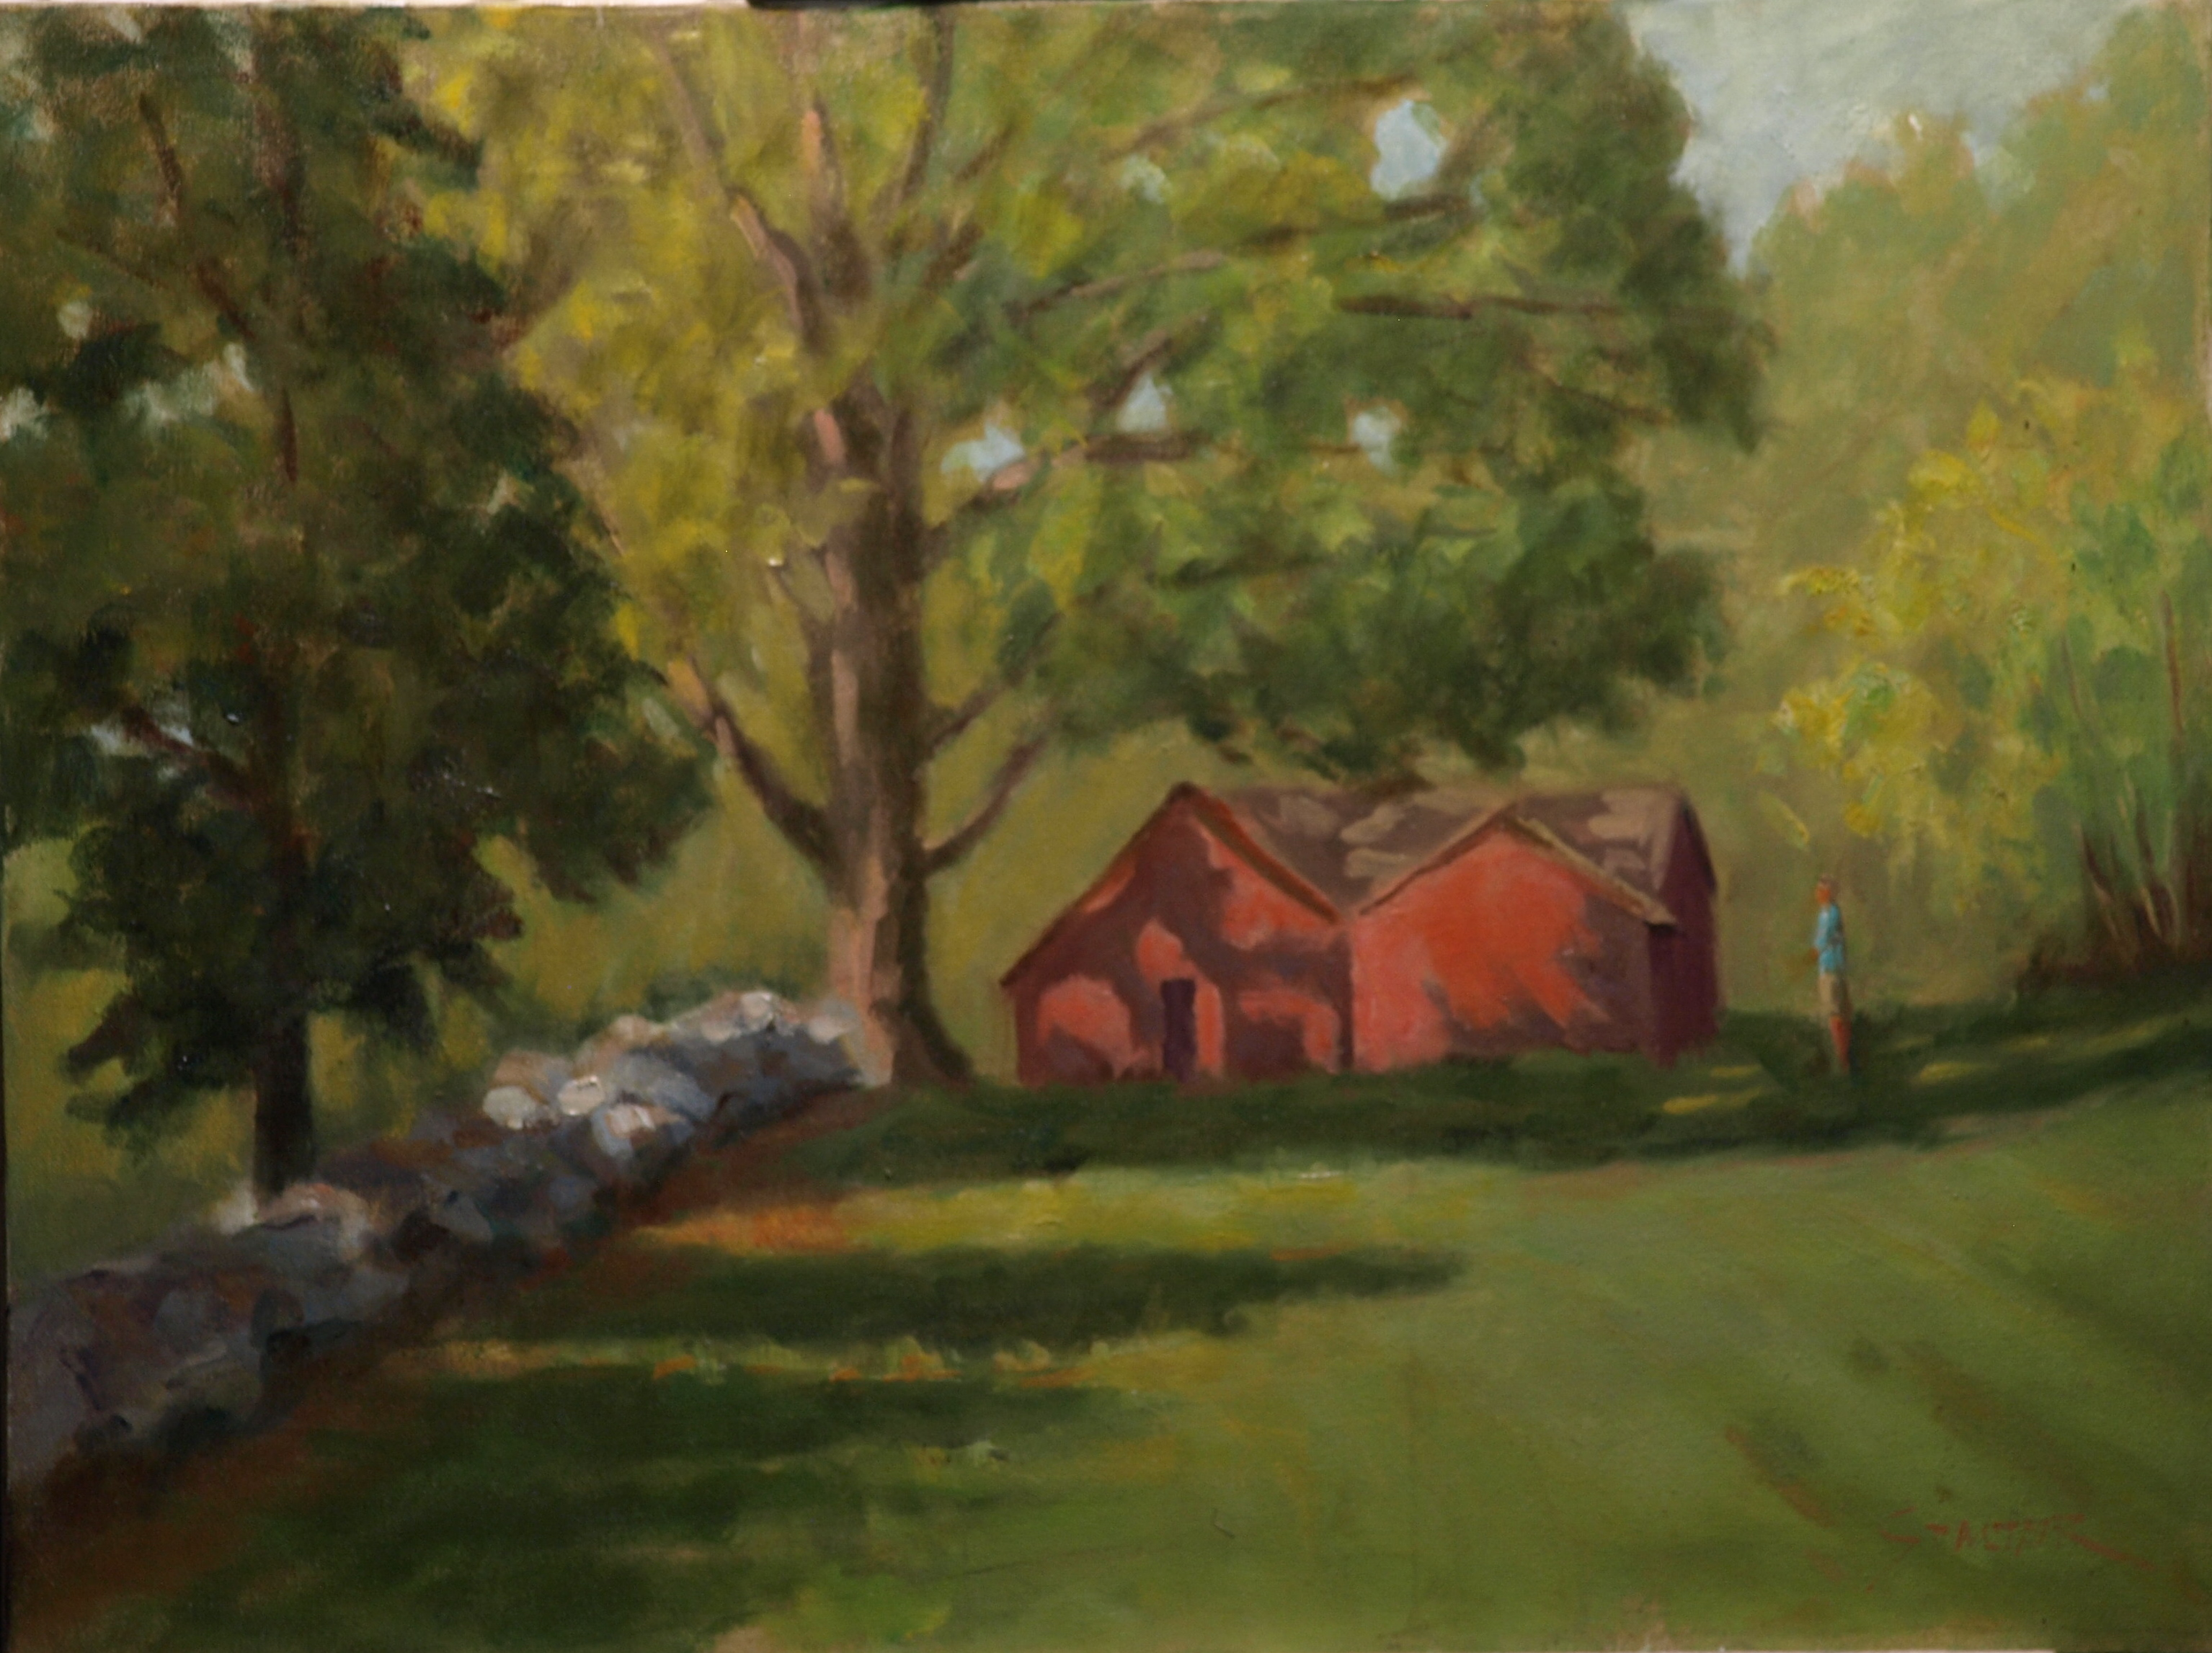 Stone Wall and Forge, Oil on Canvas, 18 x 24 Inches, by Richard Stalter, $650